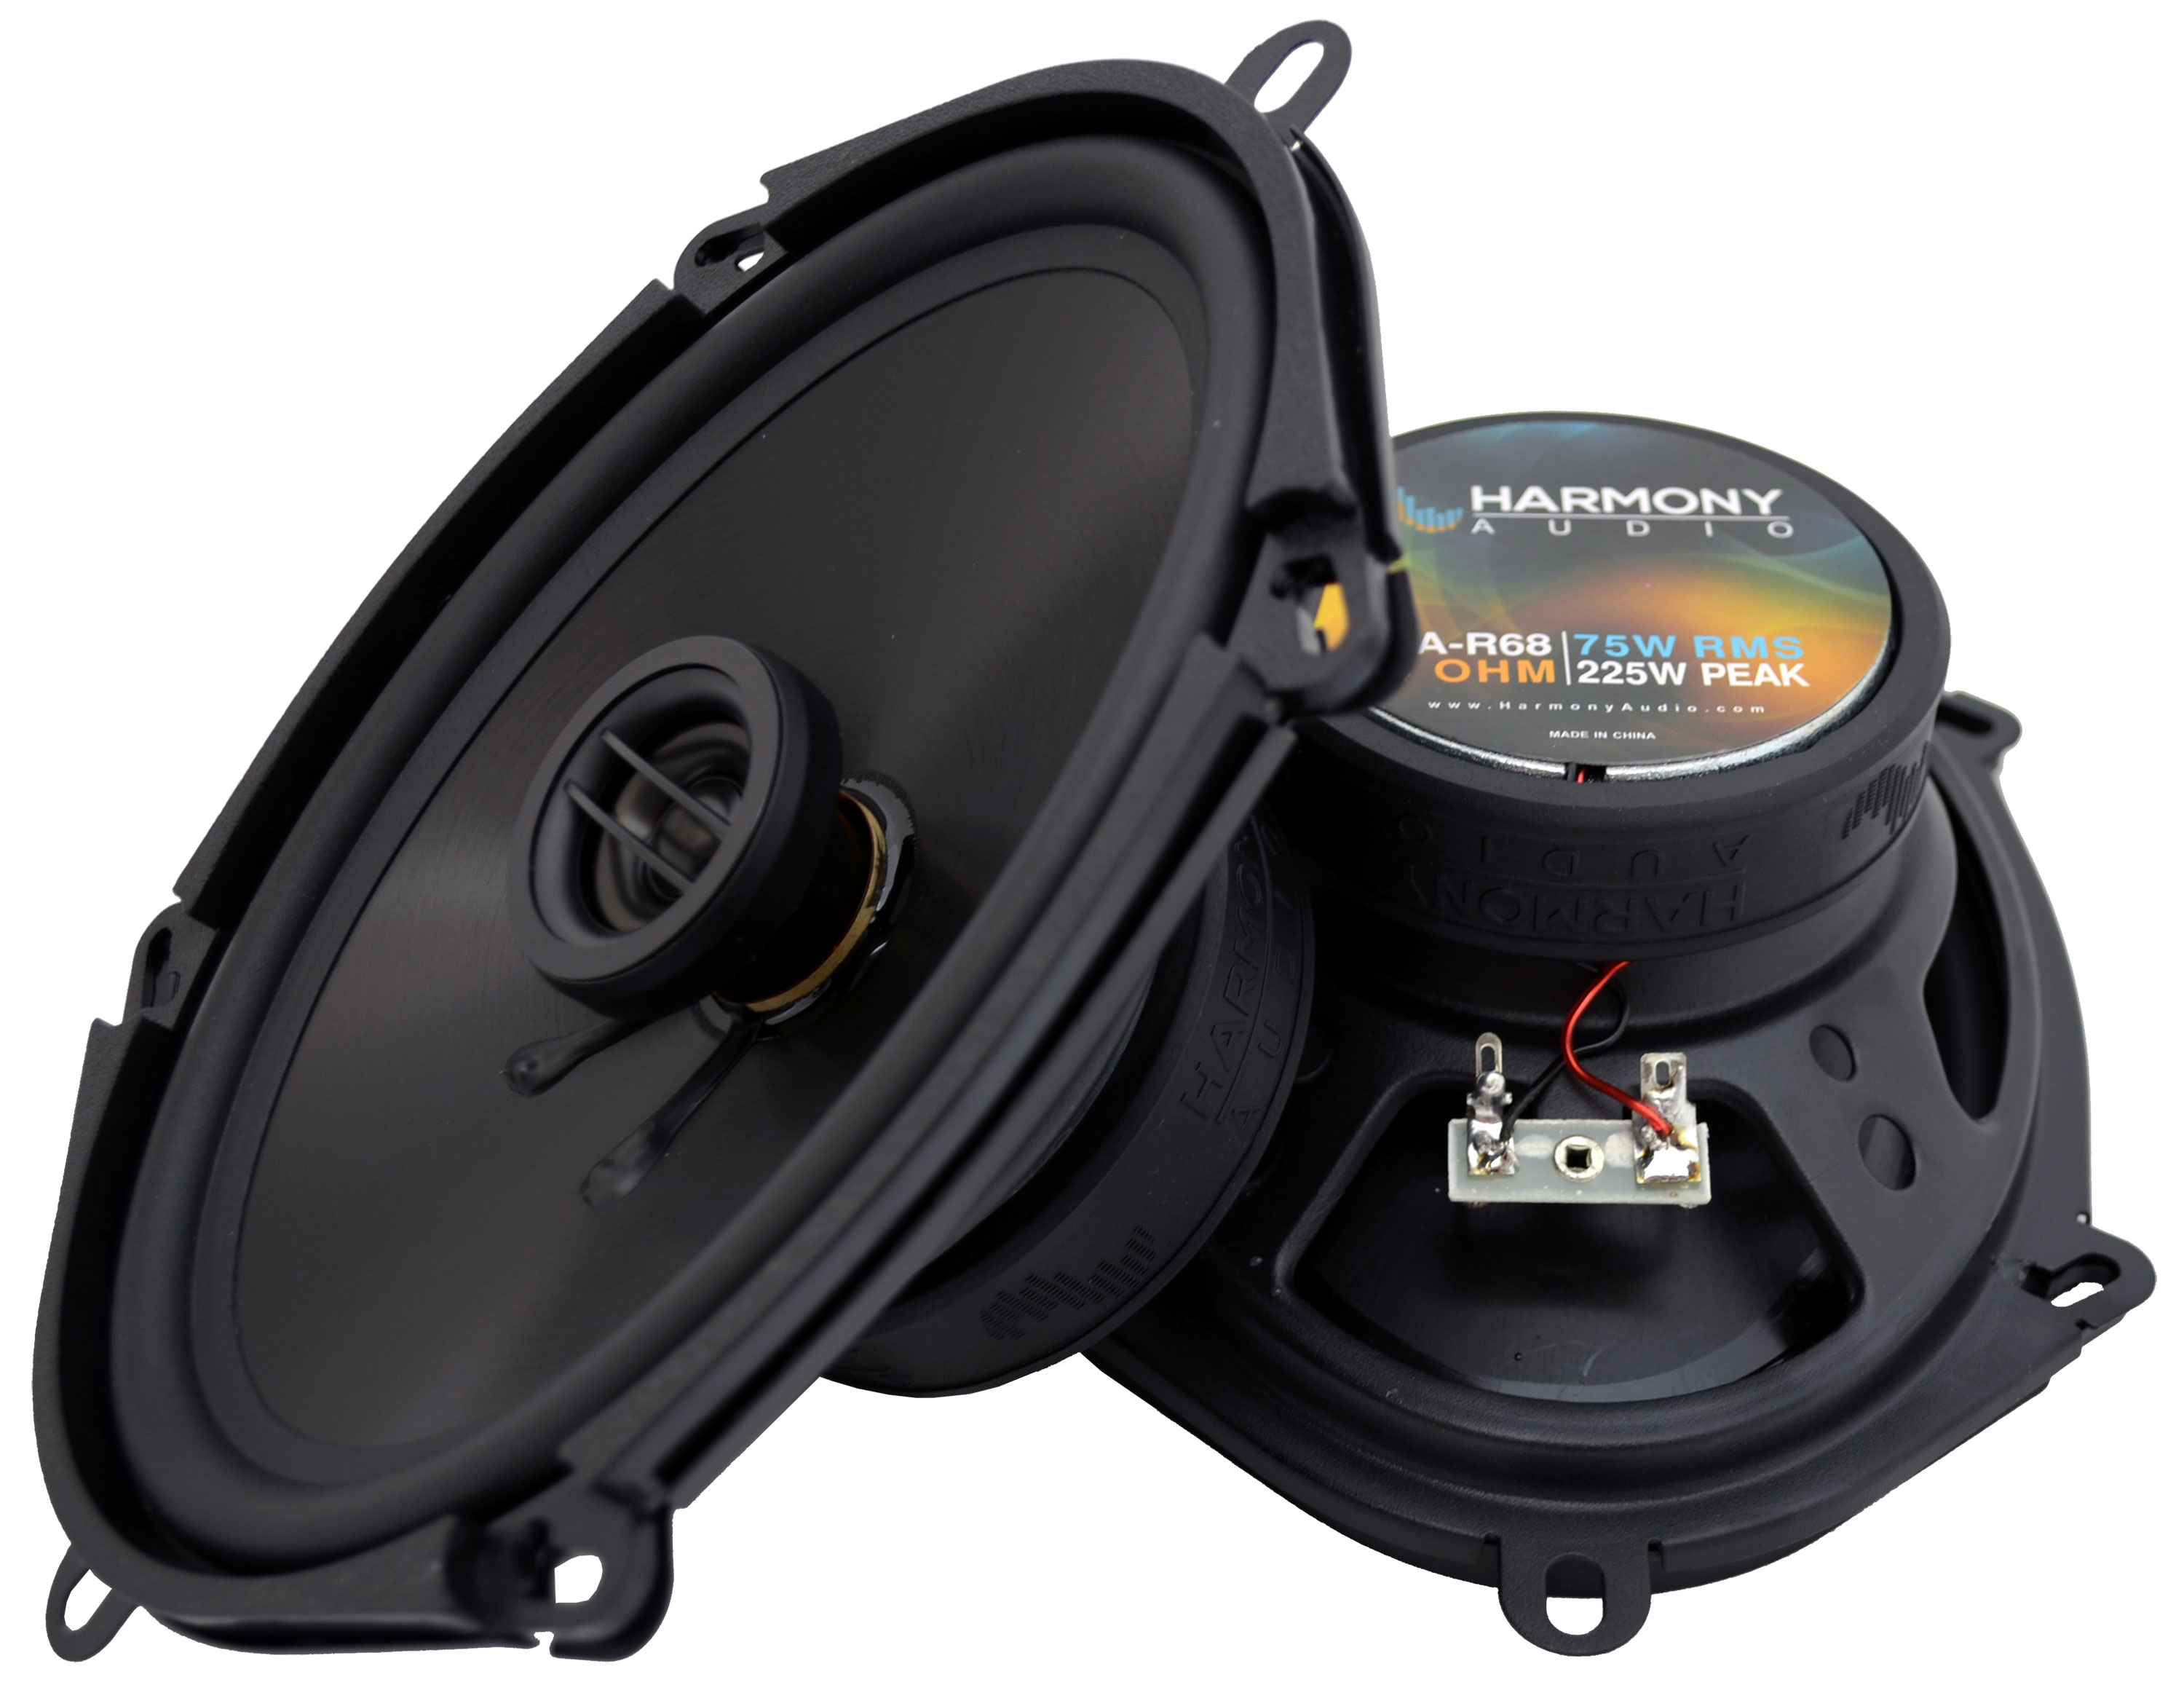 Fits Ford Taurus X 2008-2009 Rear Door Replacement Harmony HA-R68 Speakers New